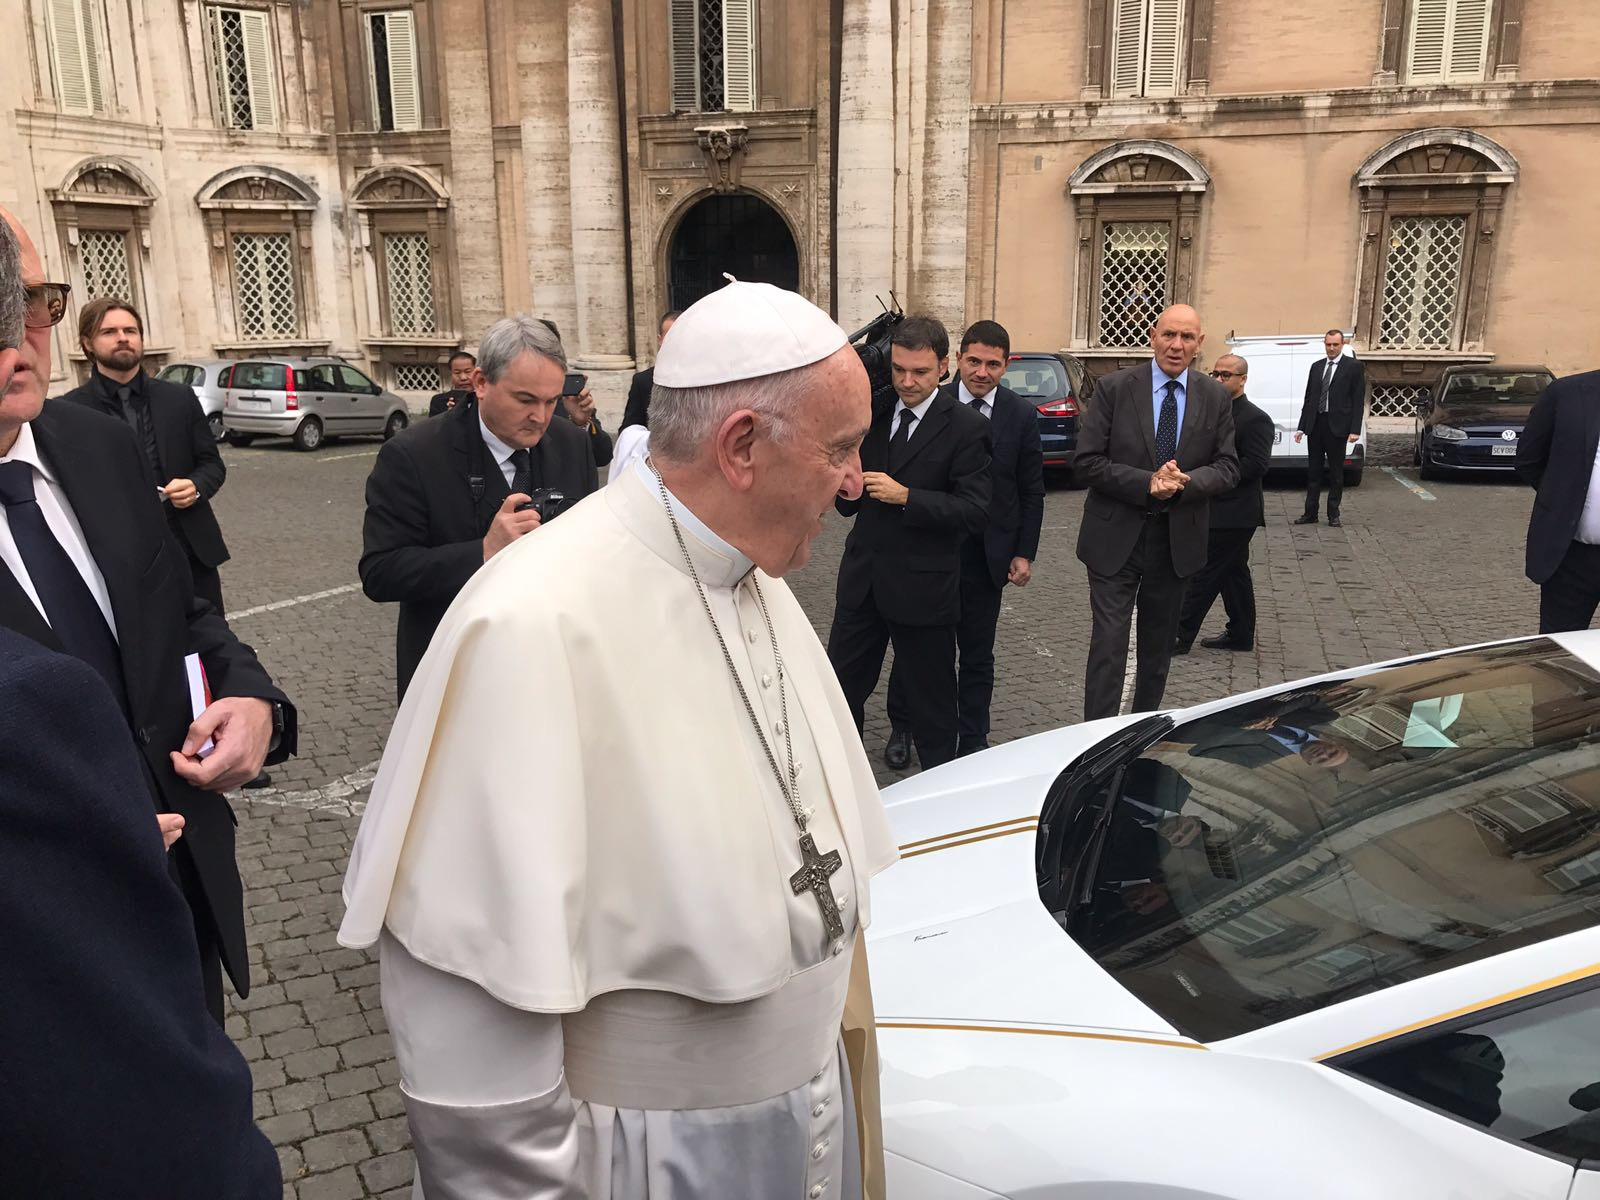 Lamborghini sports car presented to Pope Francis will be auctioned off and the proceeds donated to charity, including ACN